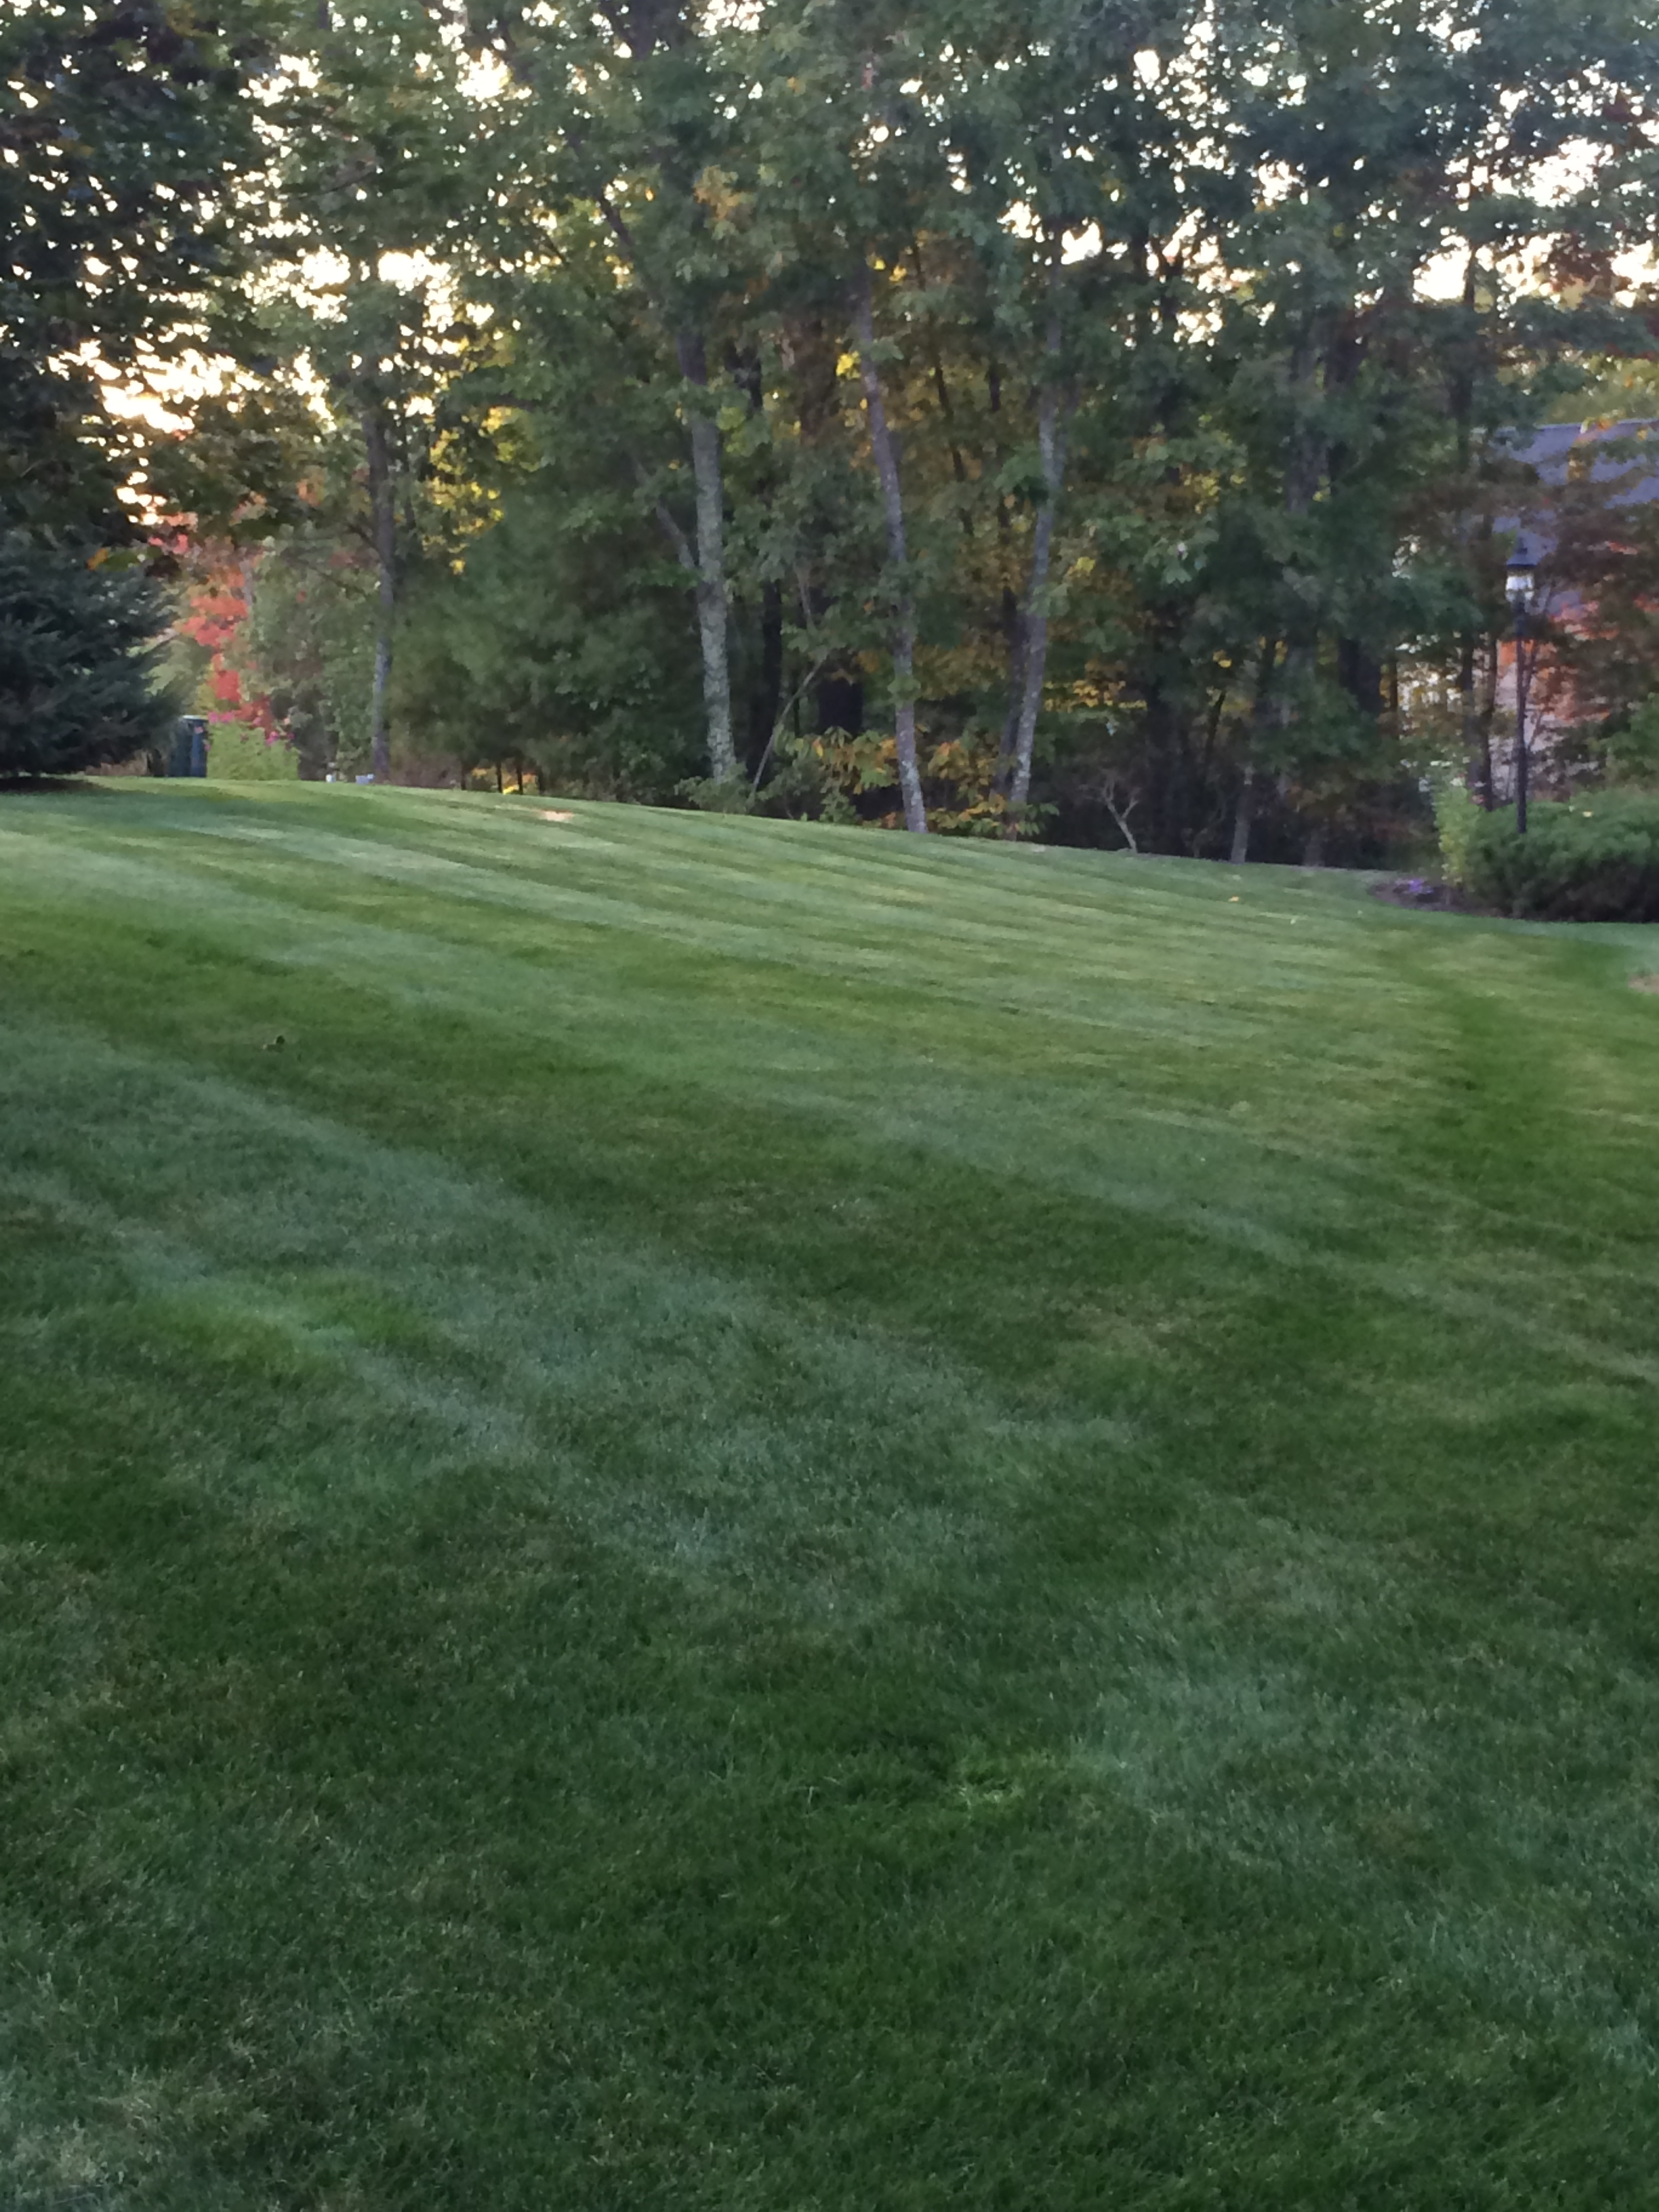 Lawn mowing service for homes businesses in nh firman for Lawn care services